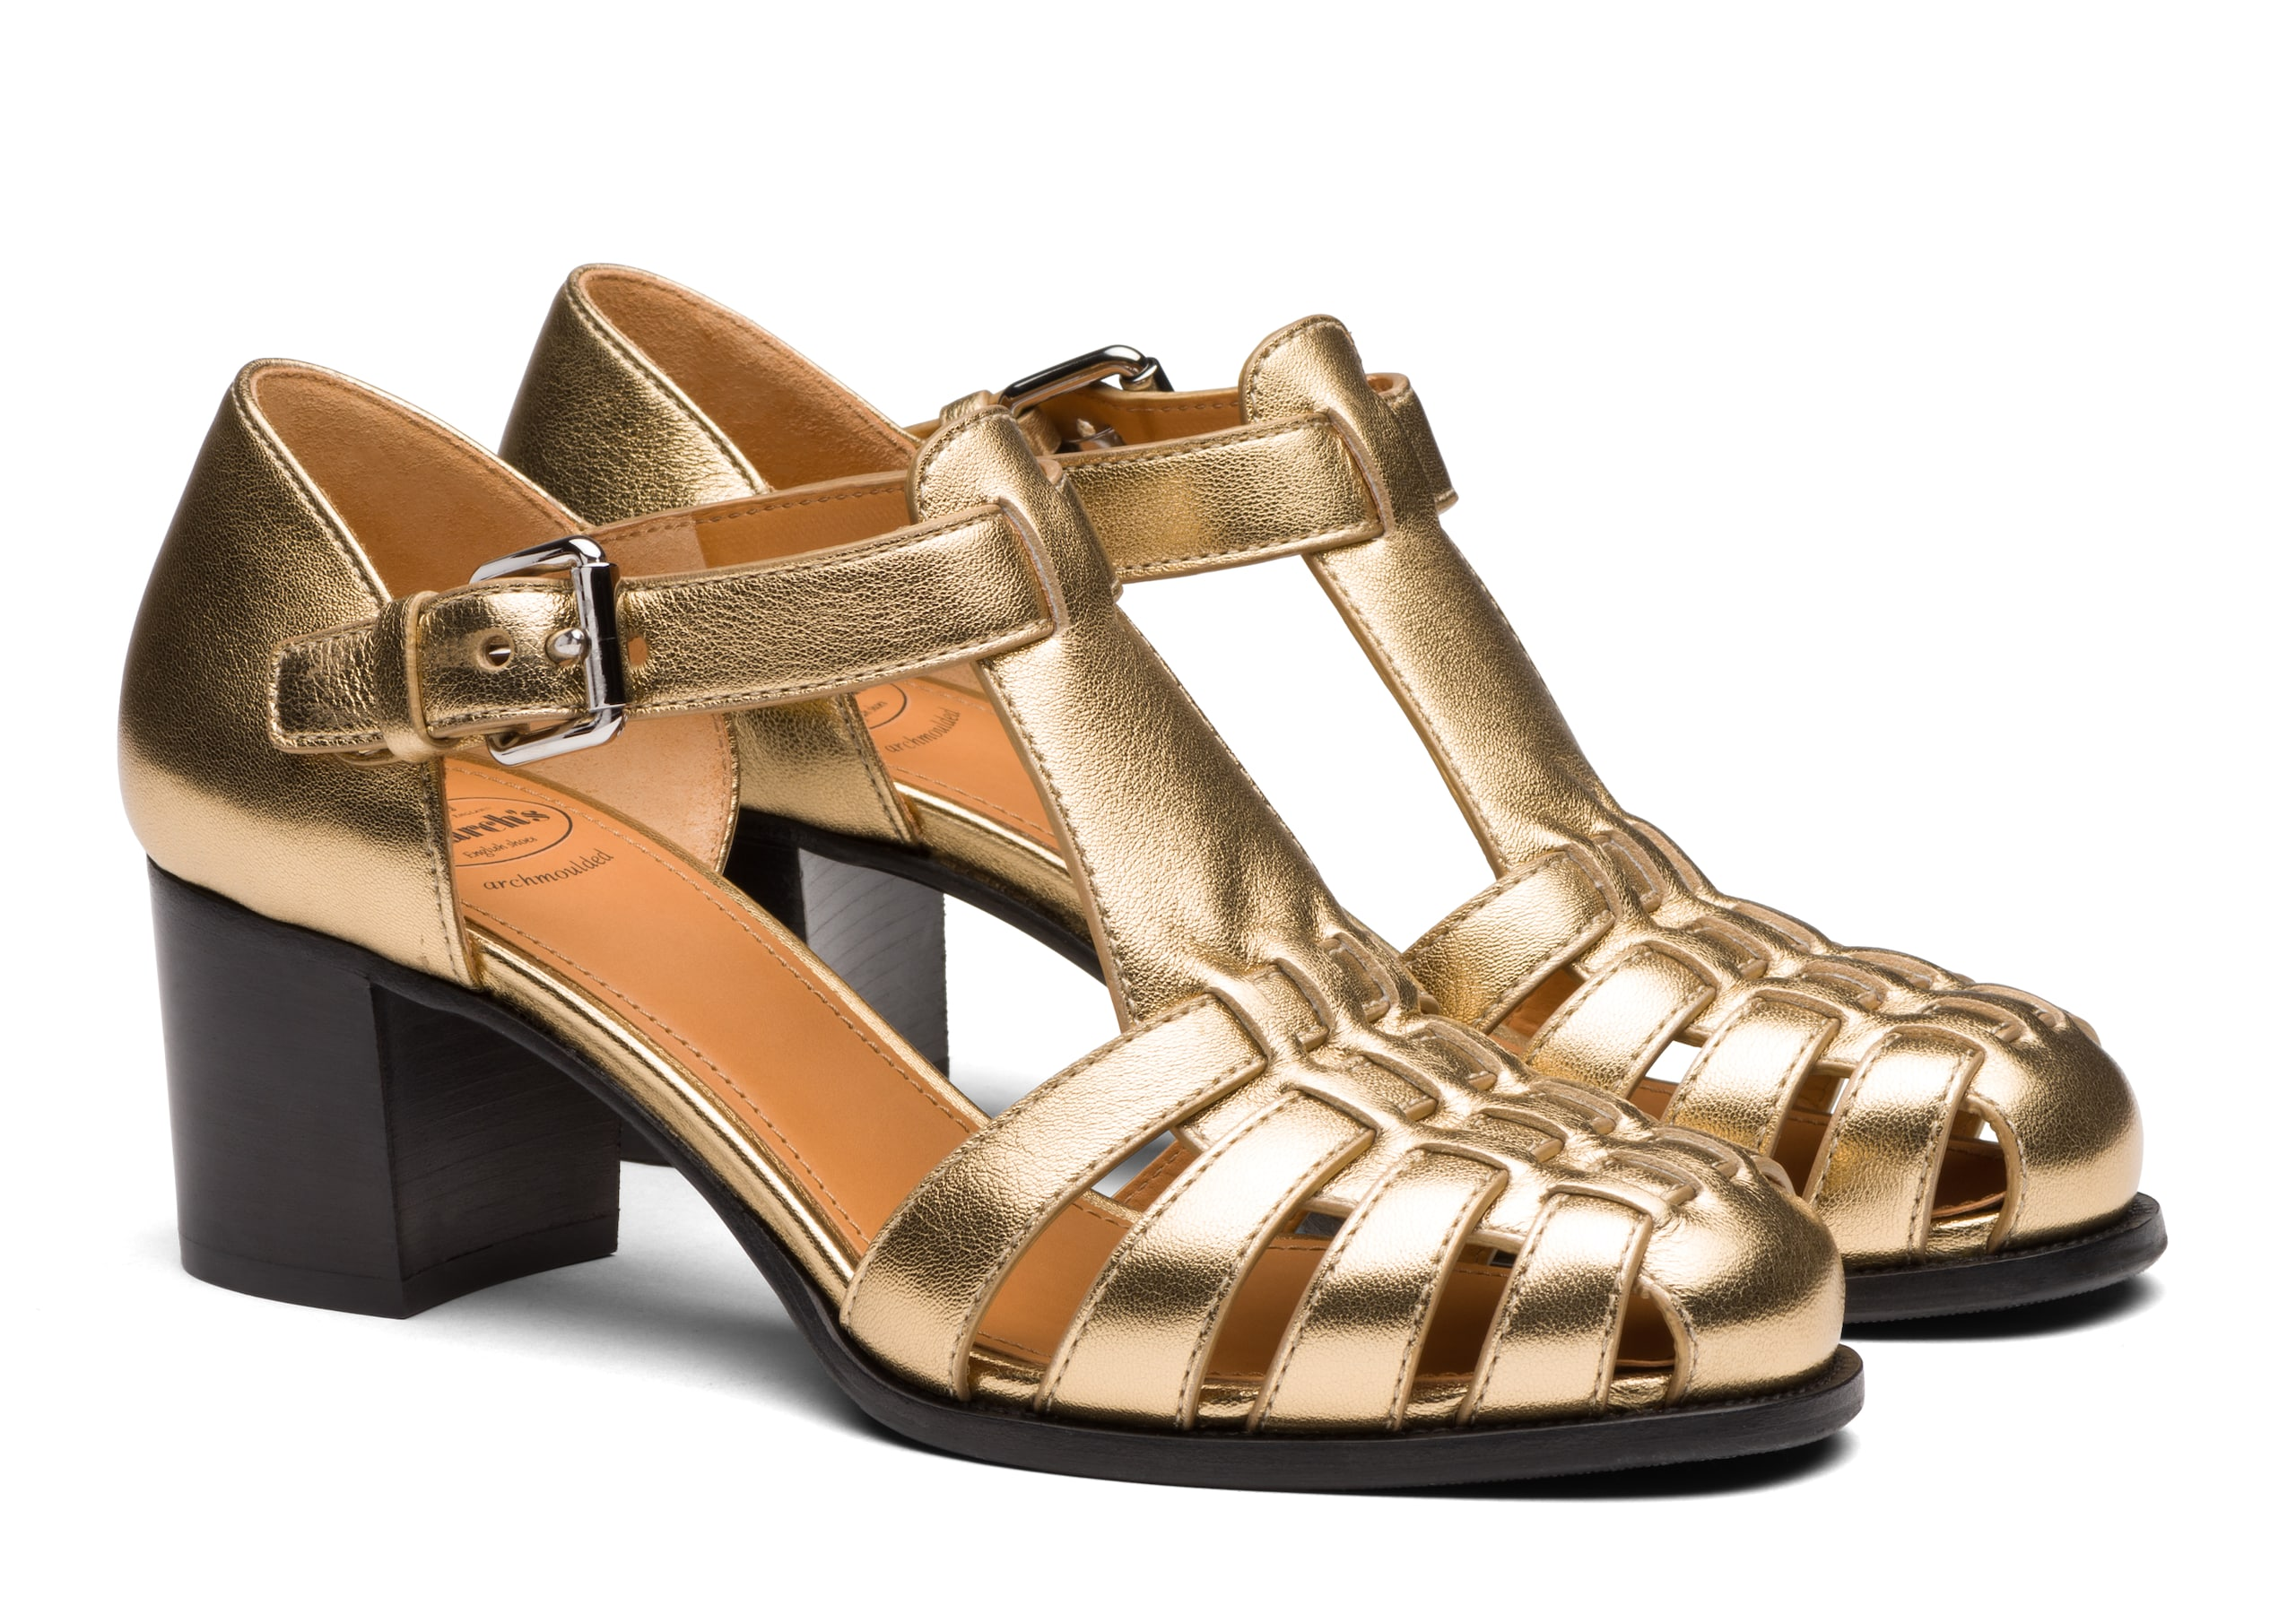 Kelsey 50 Church's Nappa Leather Mid Heel Sandal Gold/silver